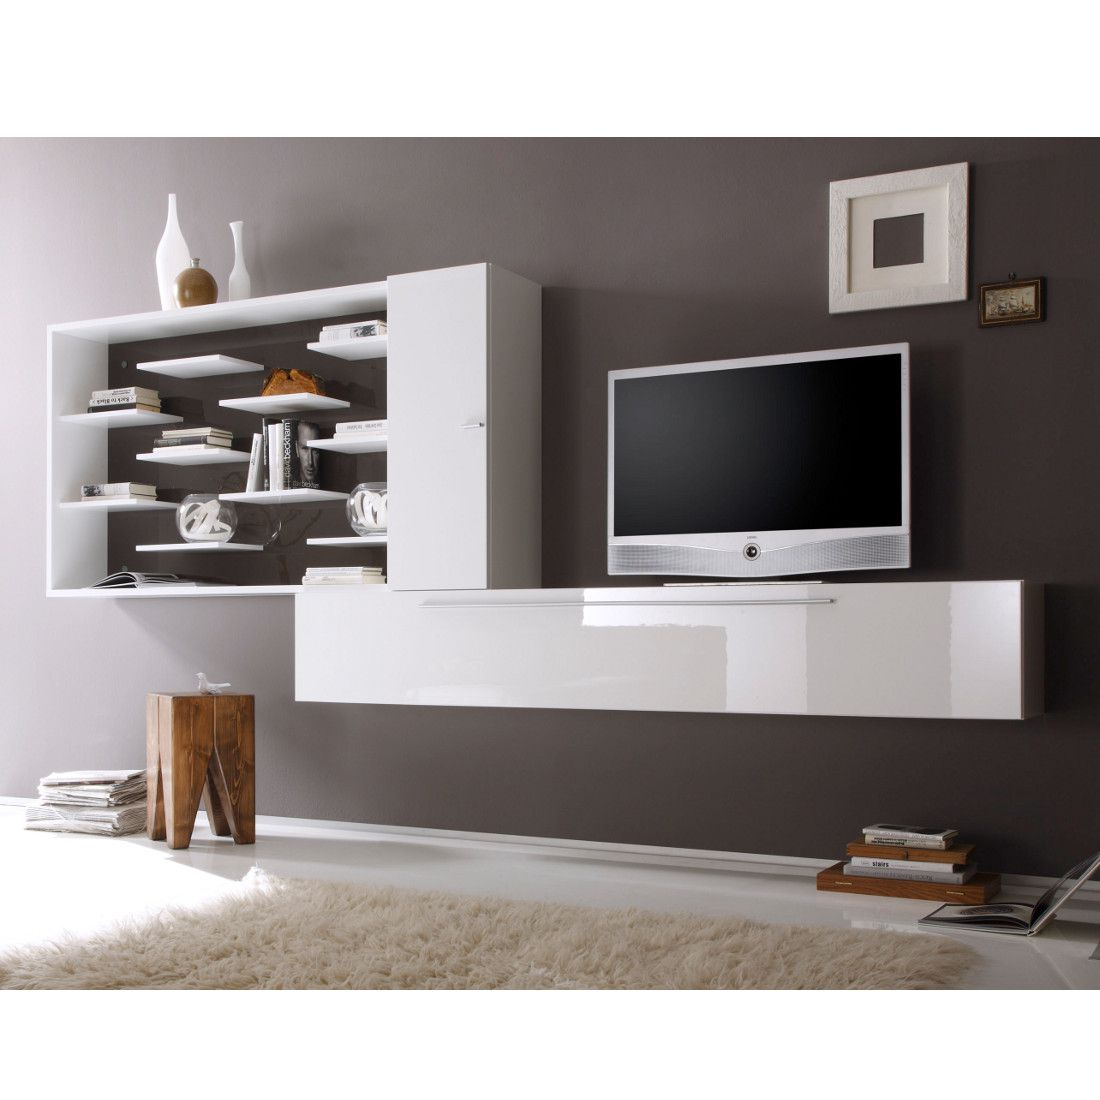 wohnwand coloret wei anthrazit hochglanz. Black Bedroom Furniture Sets. Home Design Ideas